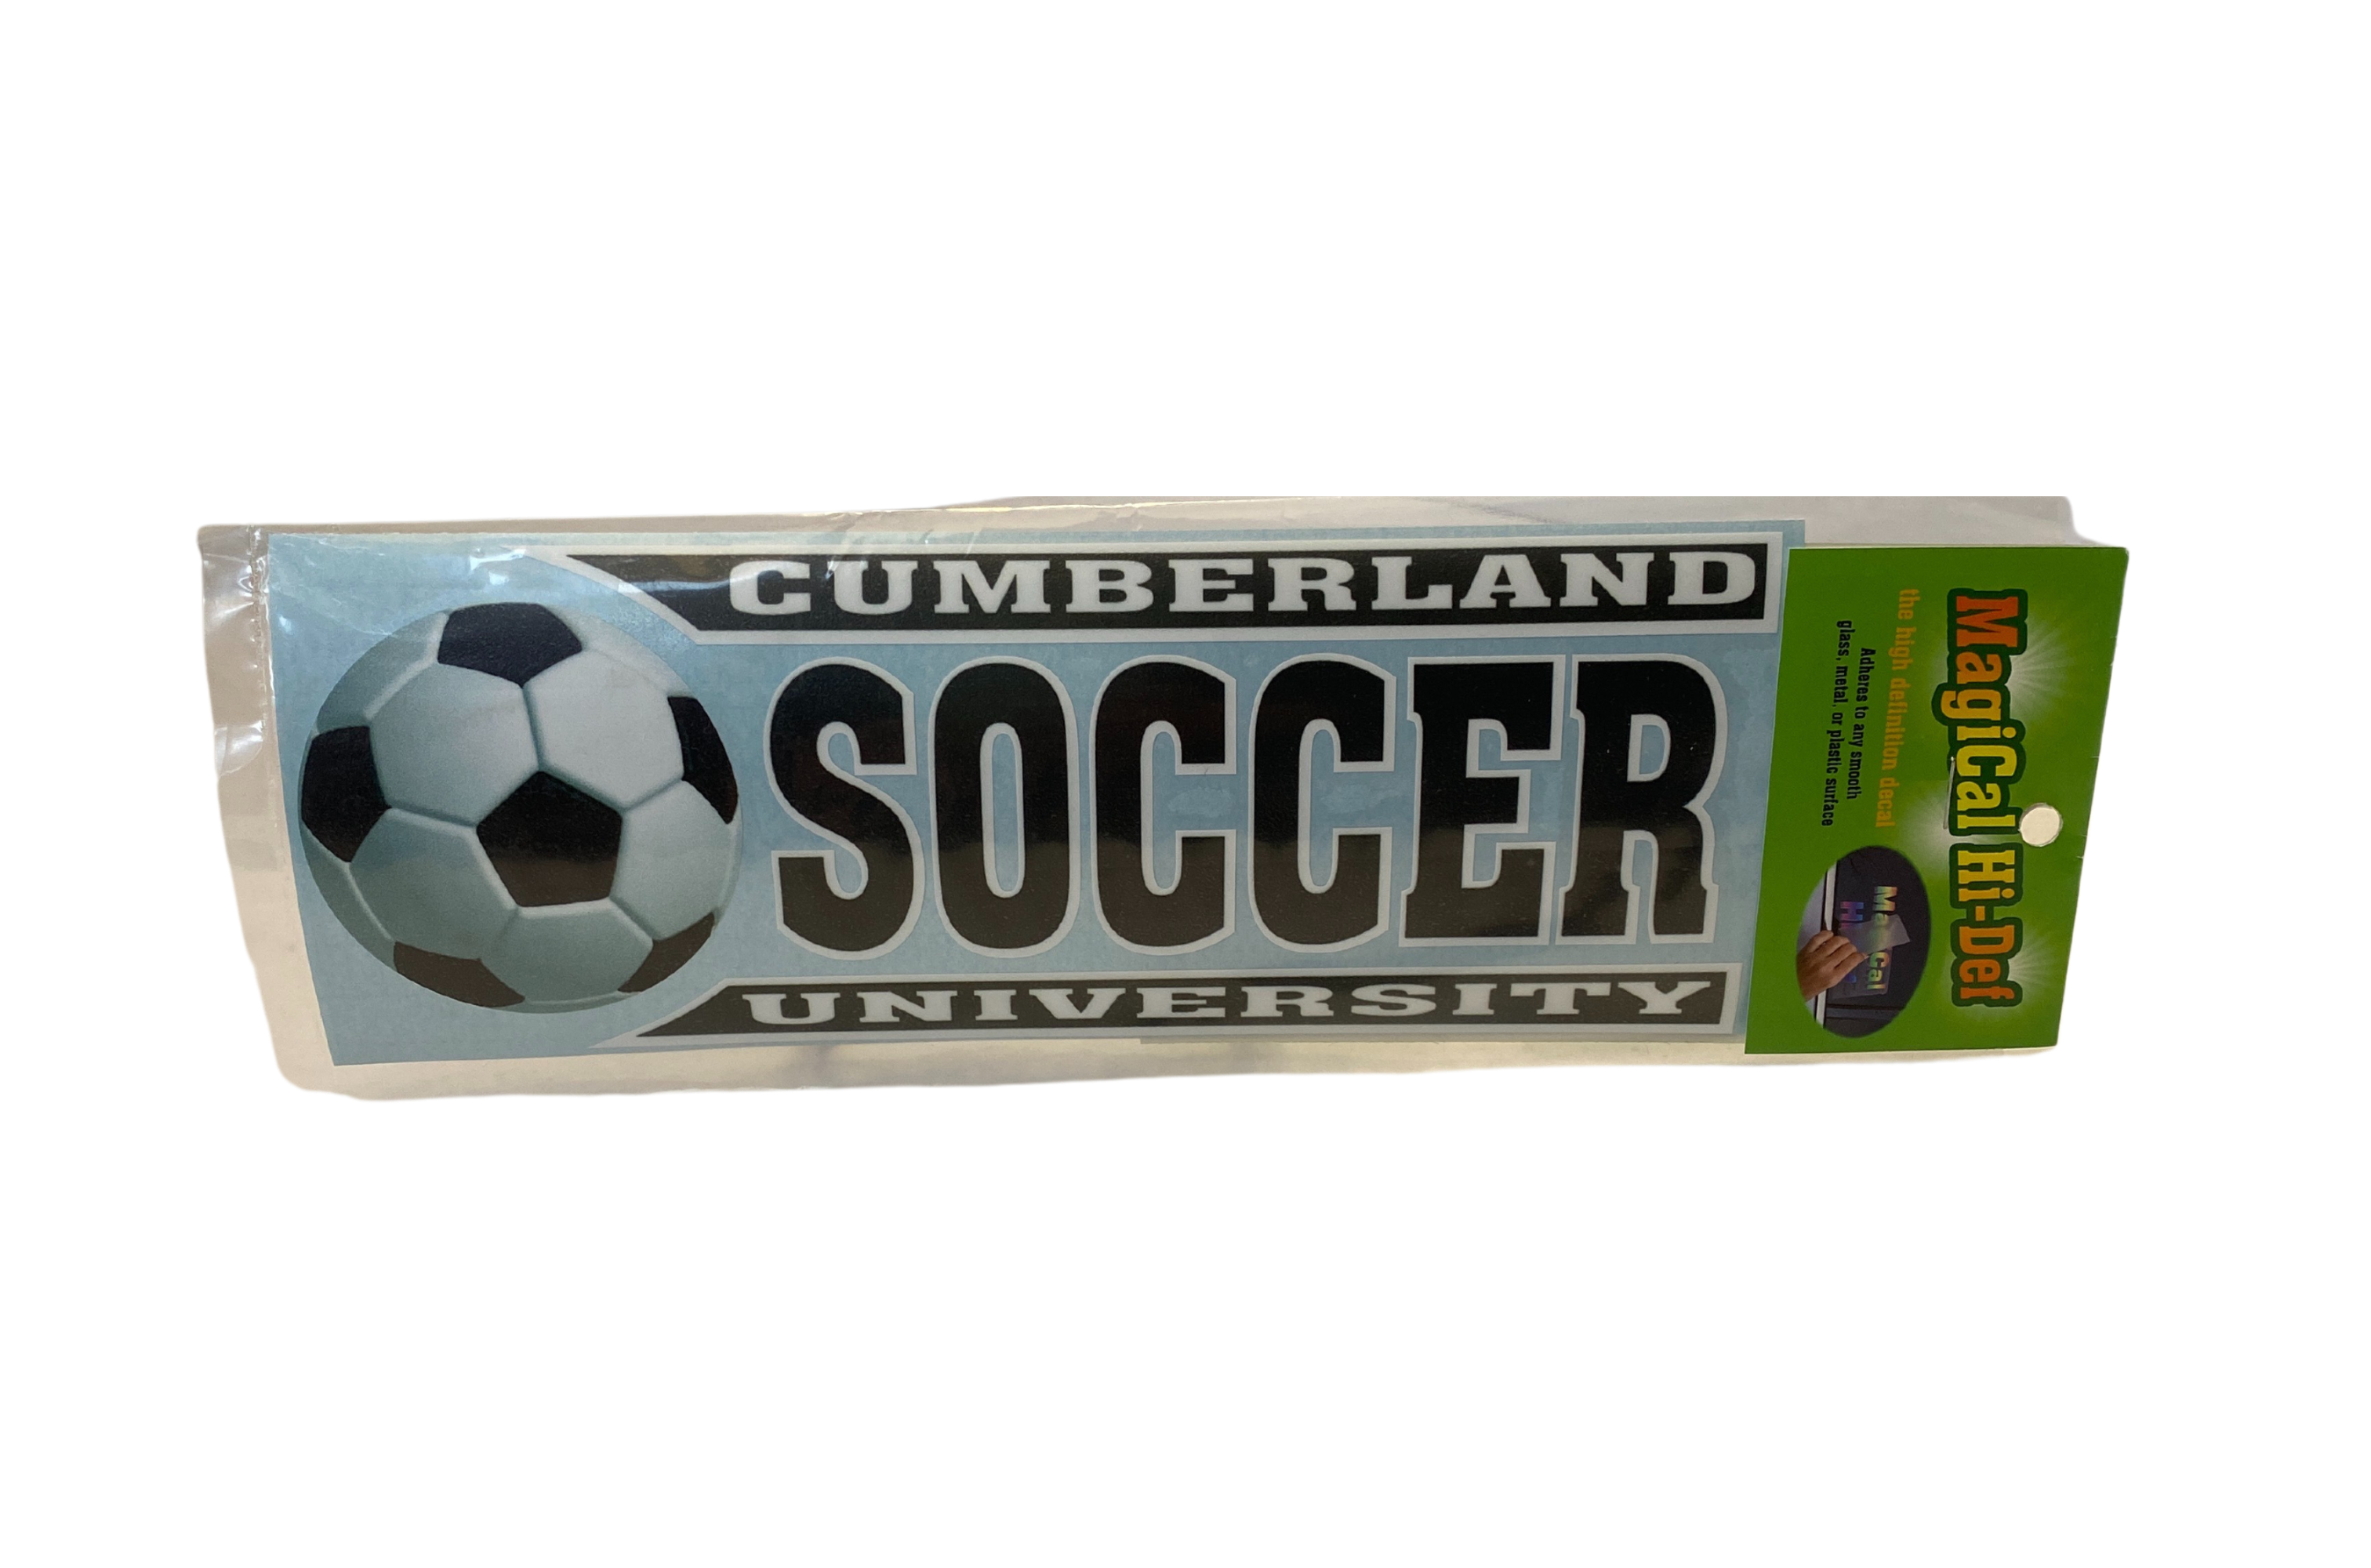 Cumberland Soccer Line Design Decal